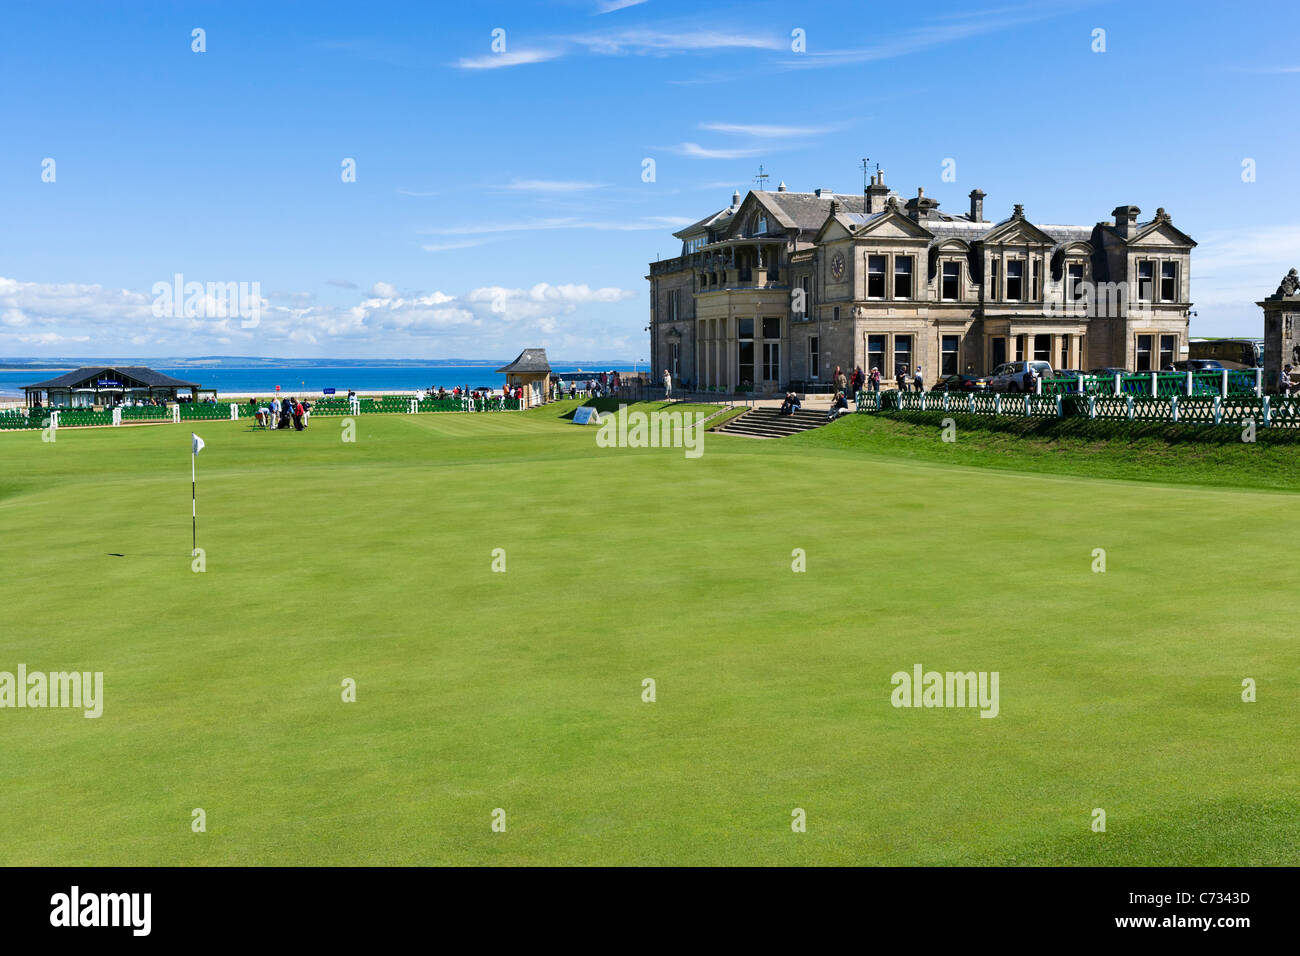 The 18th Green on the Old Course with the Royal and Ancient Clubhouse behind, St Andrews, Fife, Scotland, UK - Stock Image